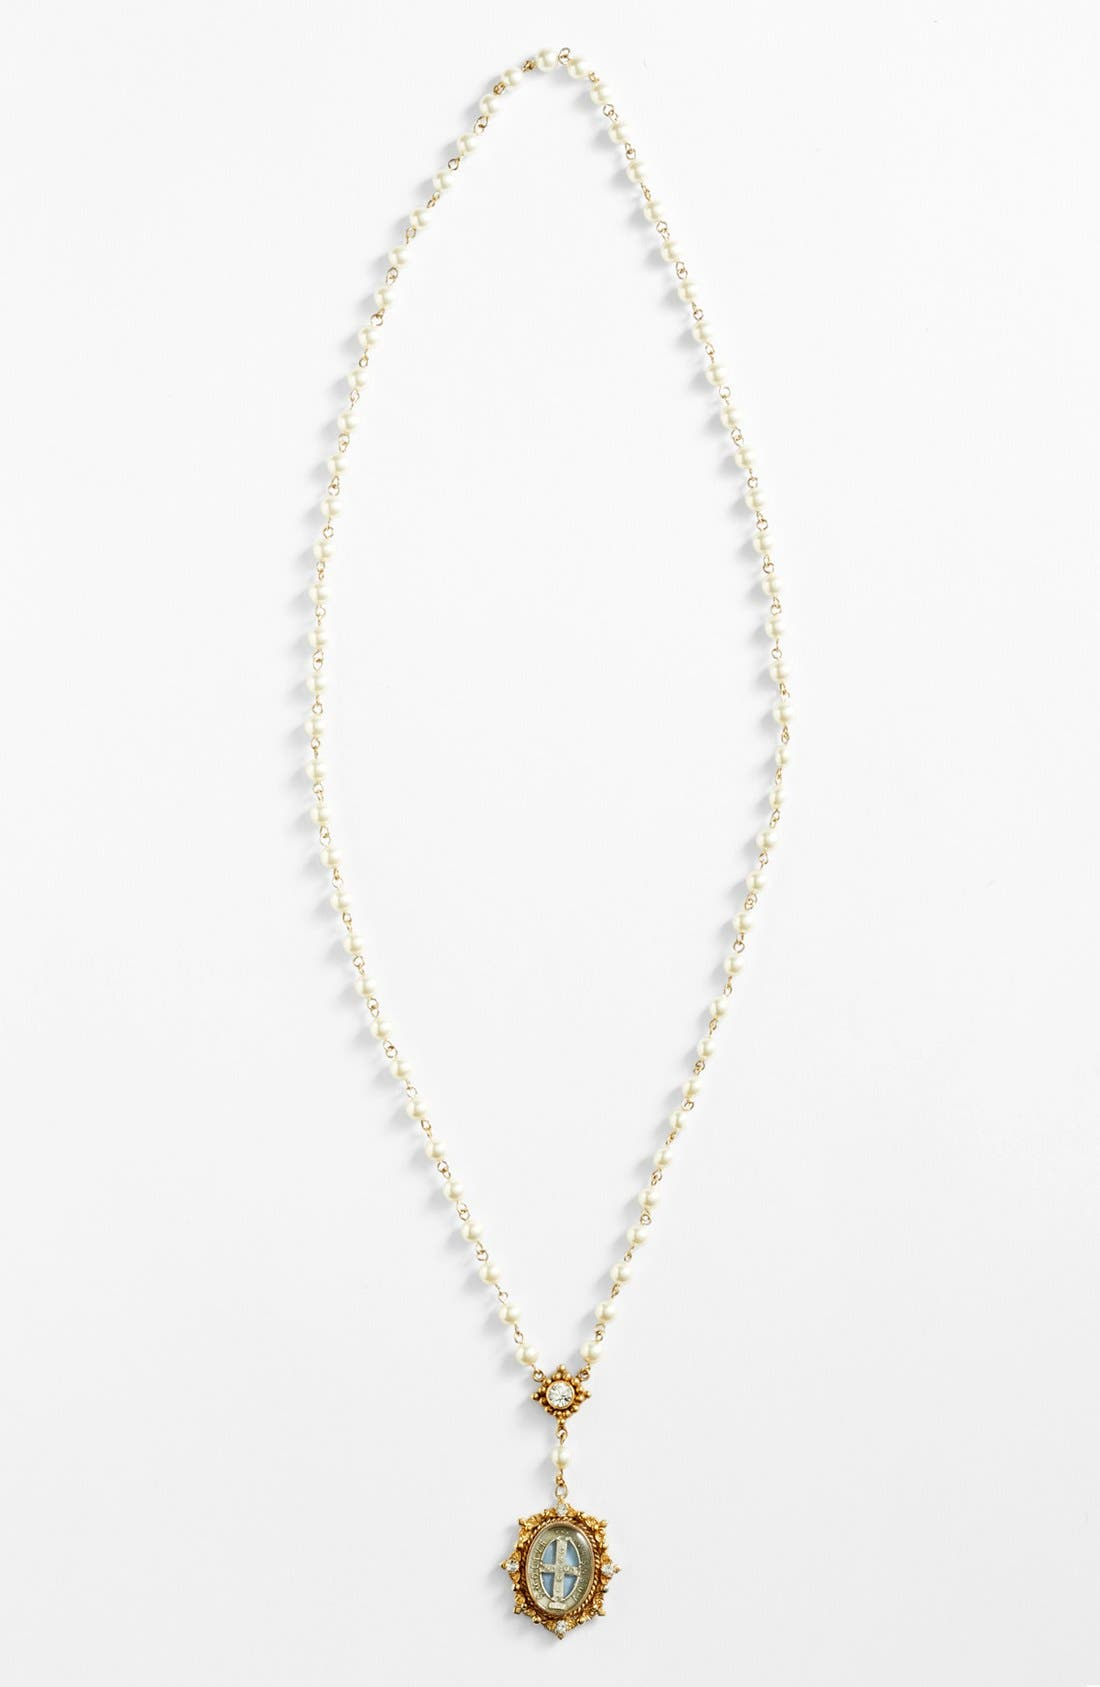 Main Image - Virgins Saints and Angels Beaded Necklace (Nordstrom Exclusive)